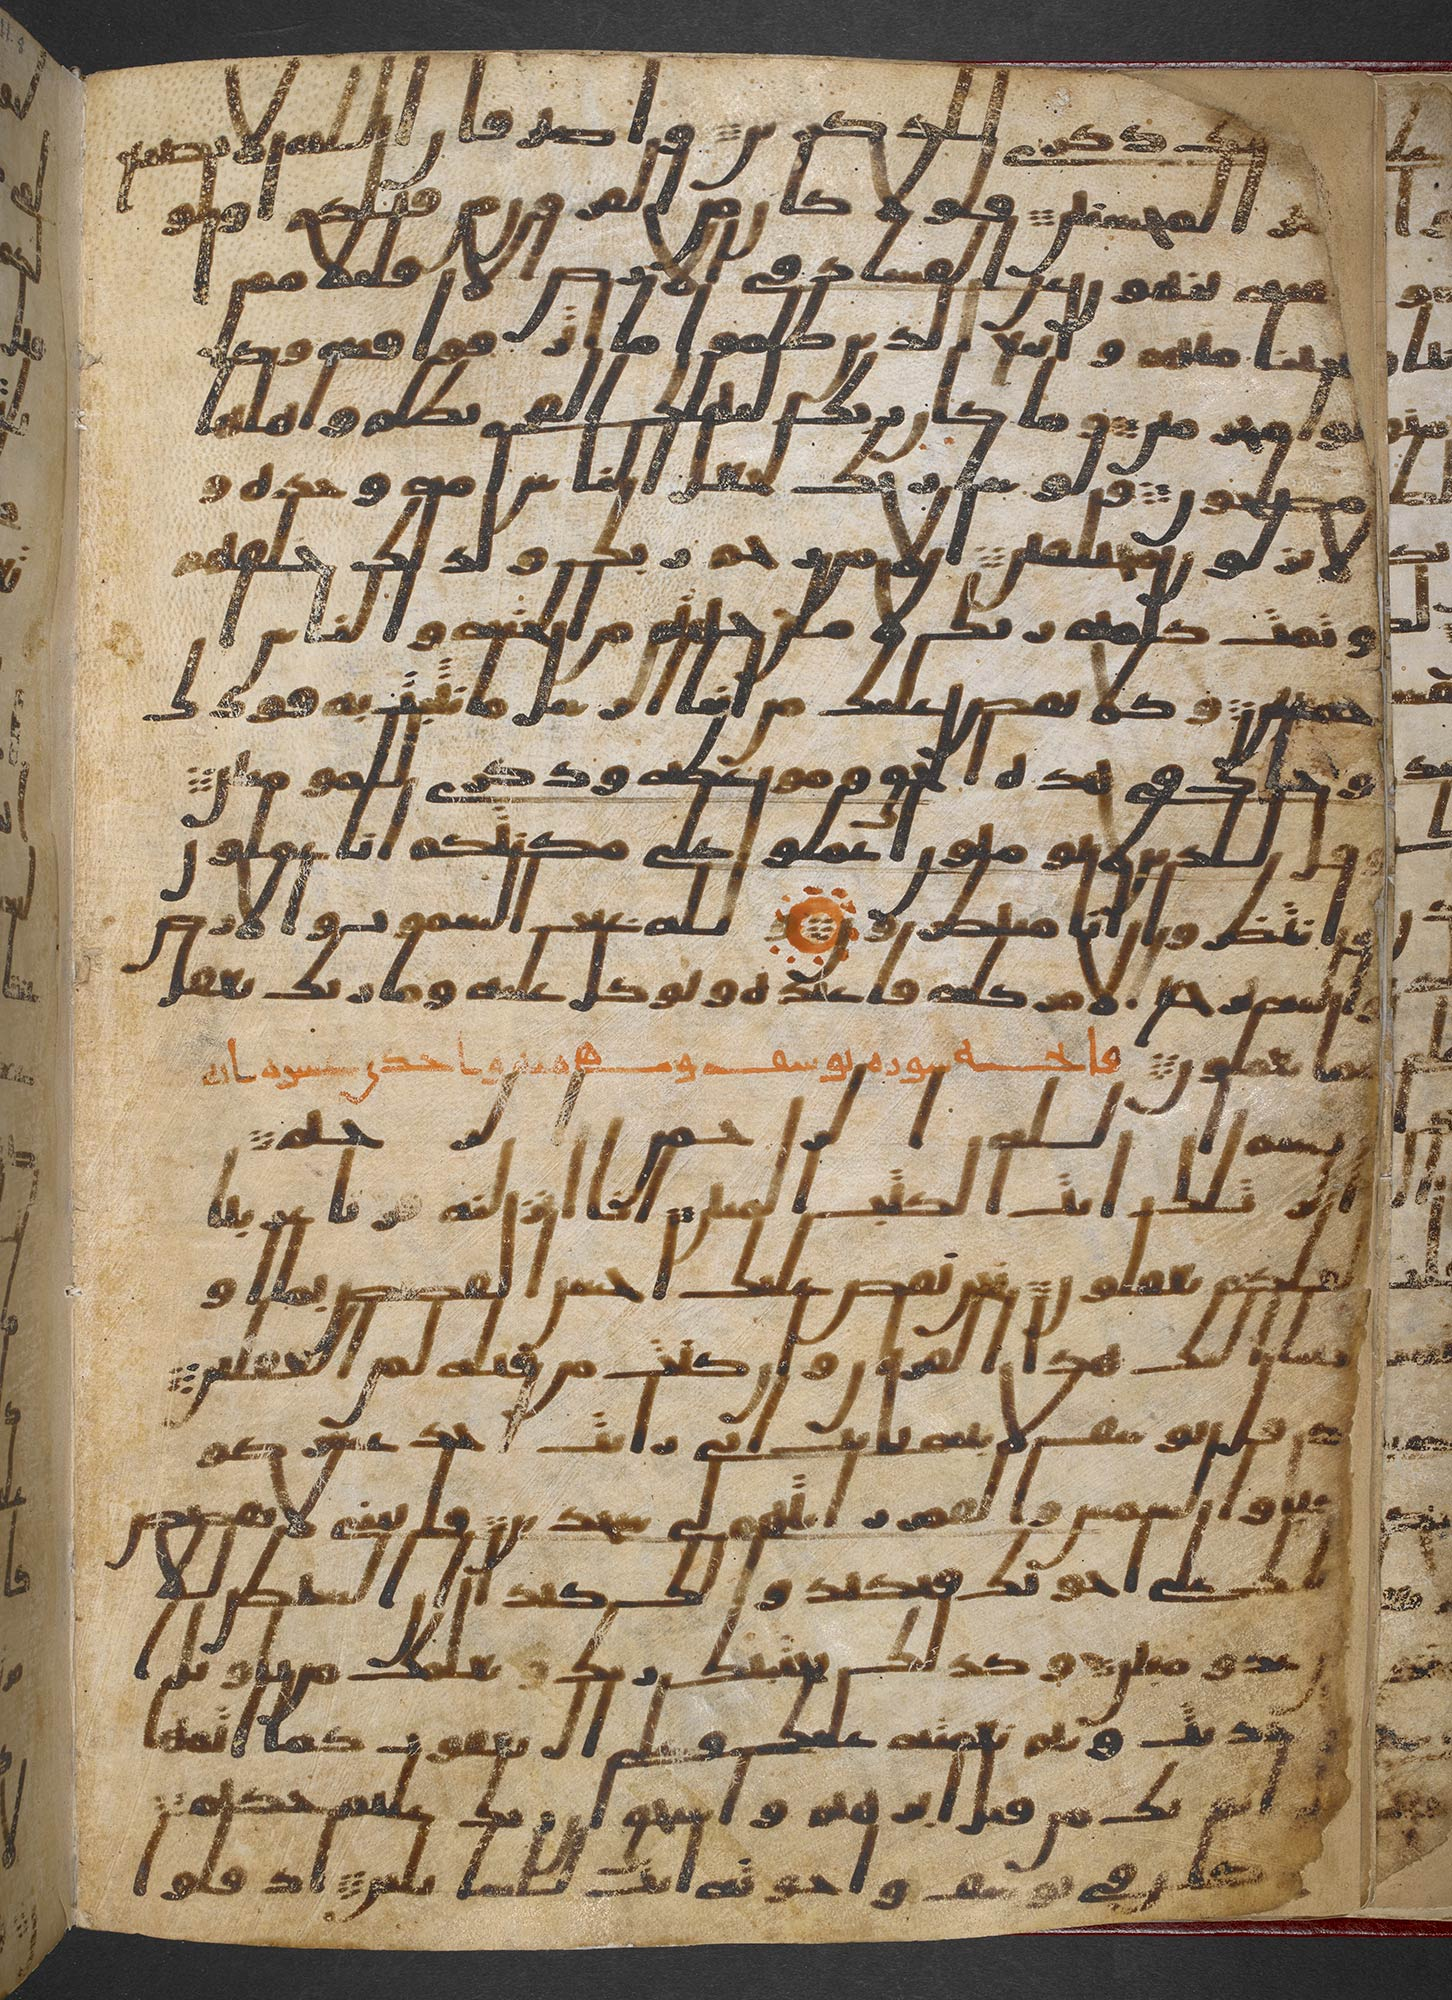 Folio 23v from the Ma'il Qur'an. The text in black is penned on vellum, it is written in an early style of Arabic script called ma'il, meaning 'sloping'